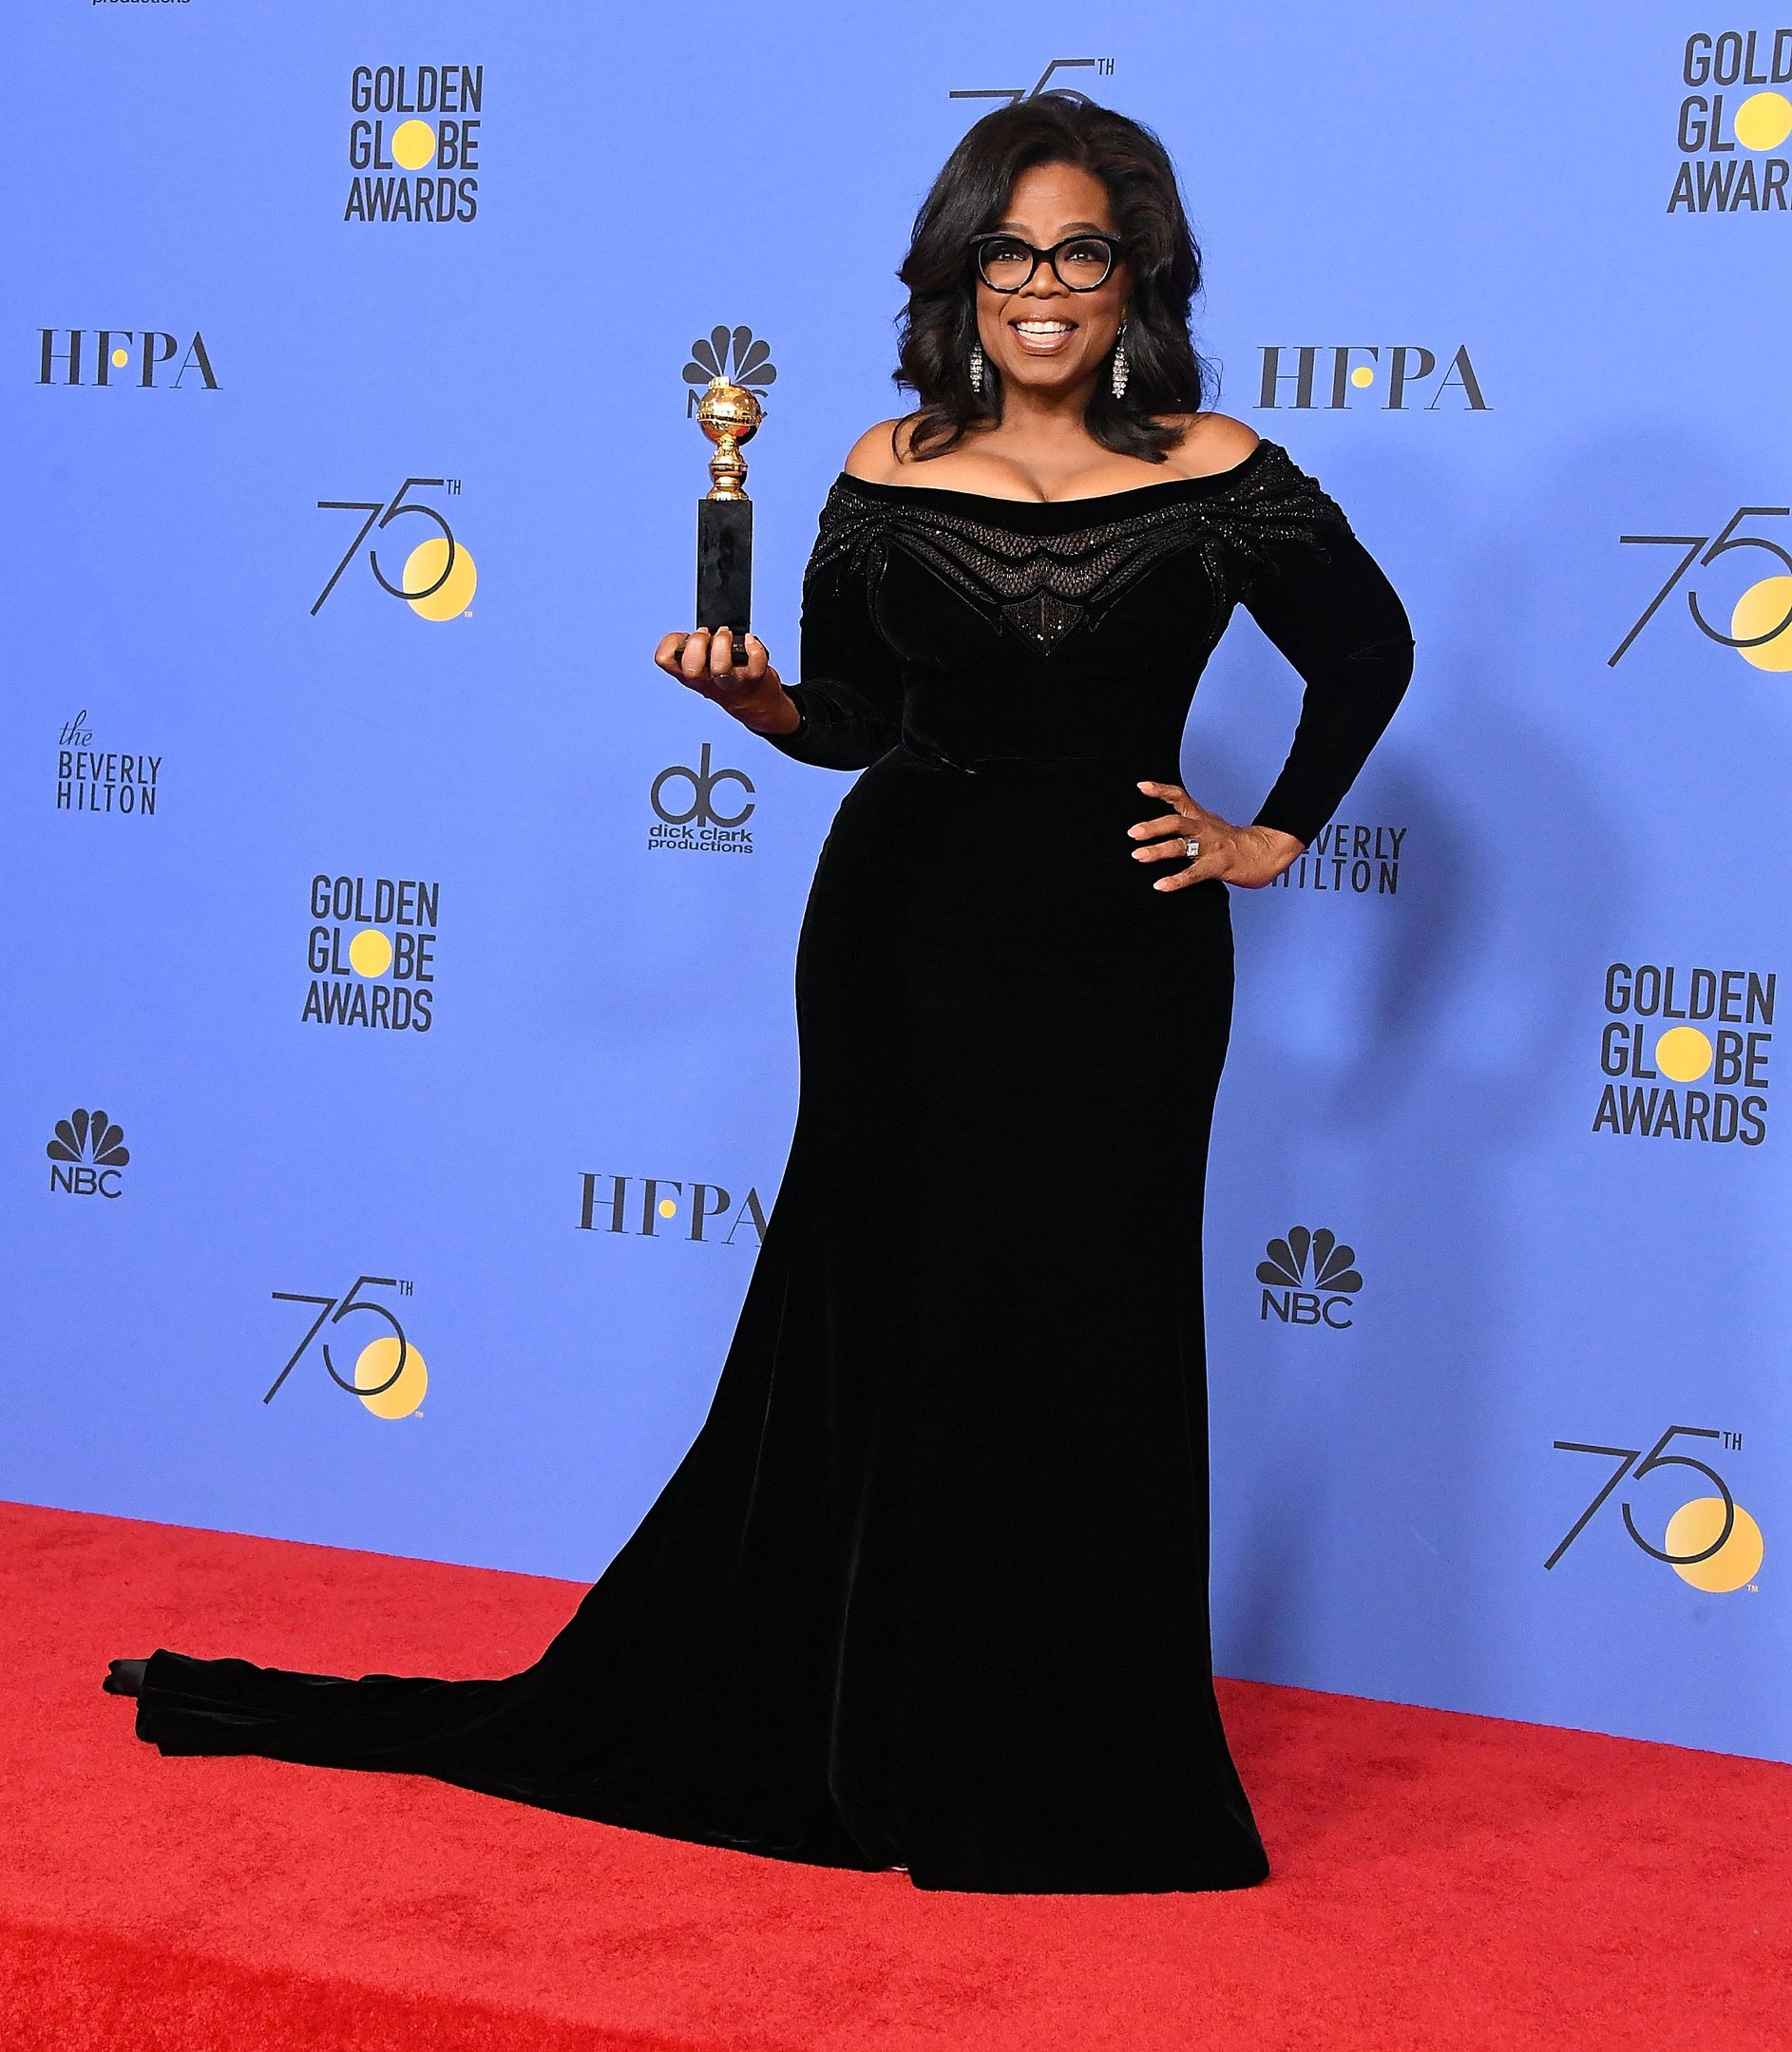 Oprah reckons running for presidency would 'kill her'